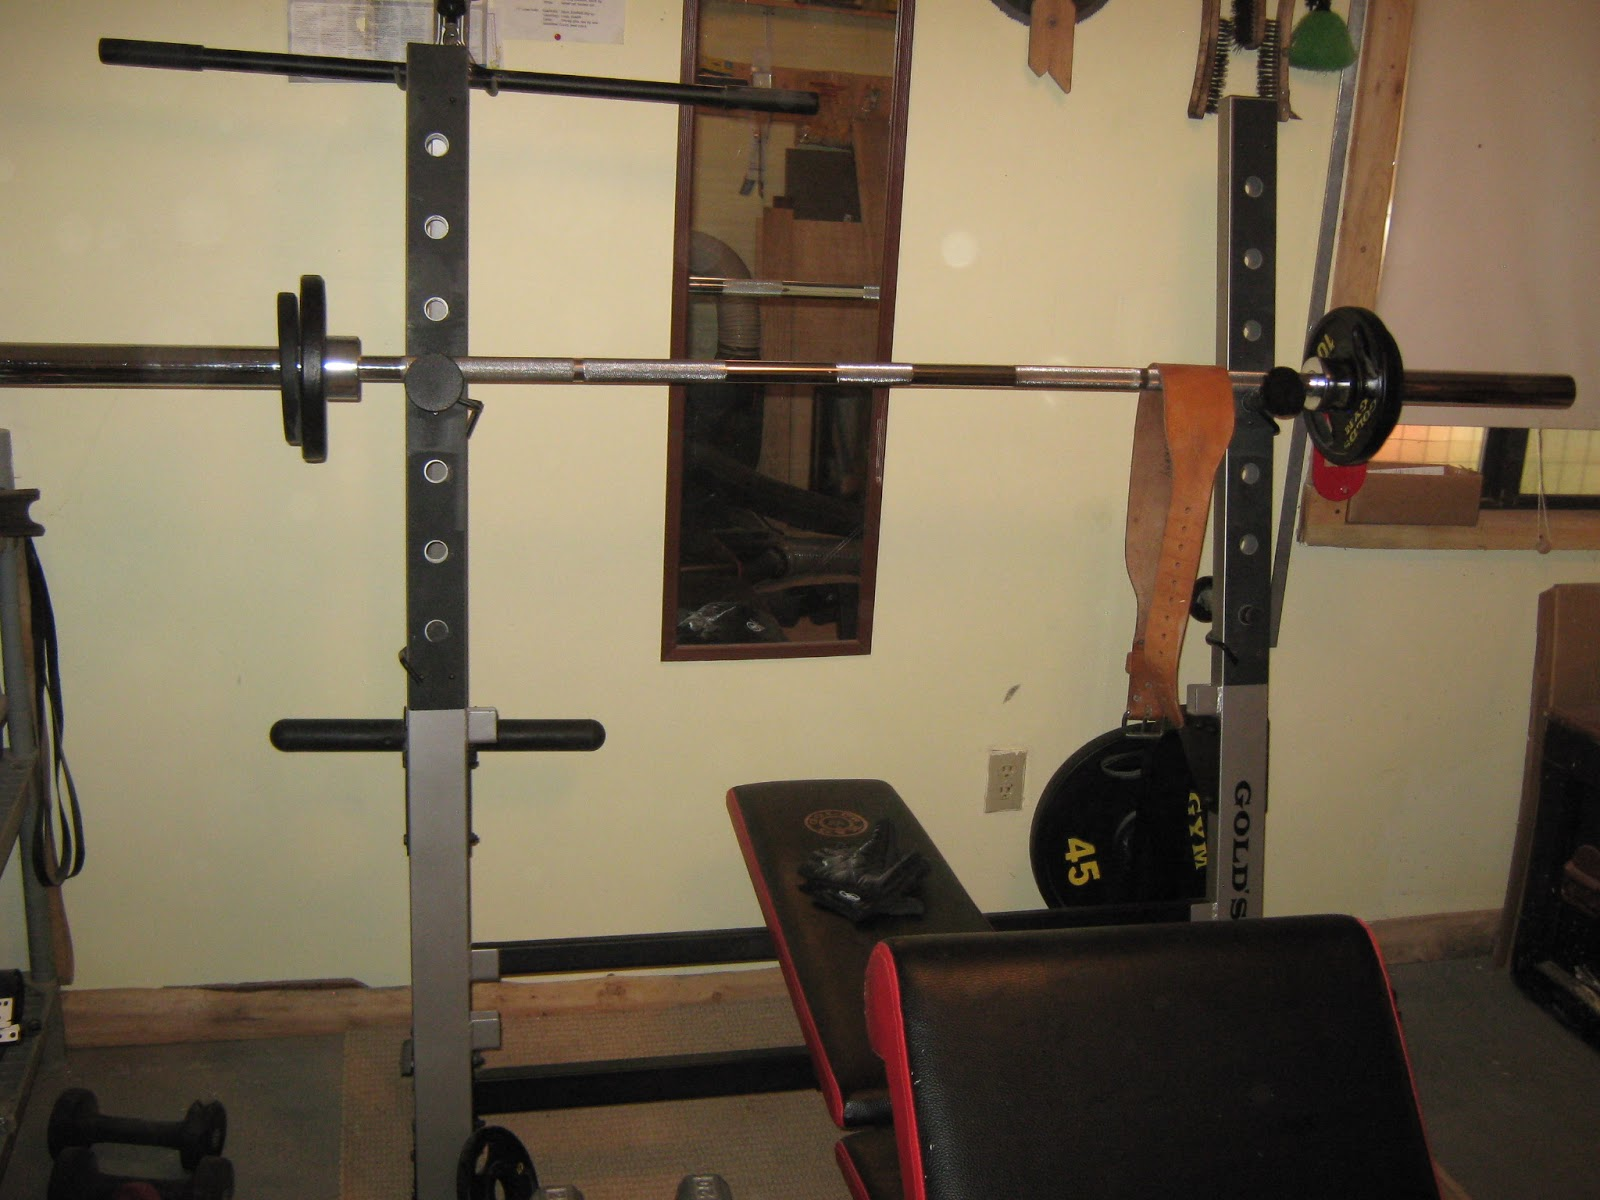 cfm s olympic master product xr hayneedle weight golds bench gold gym